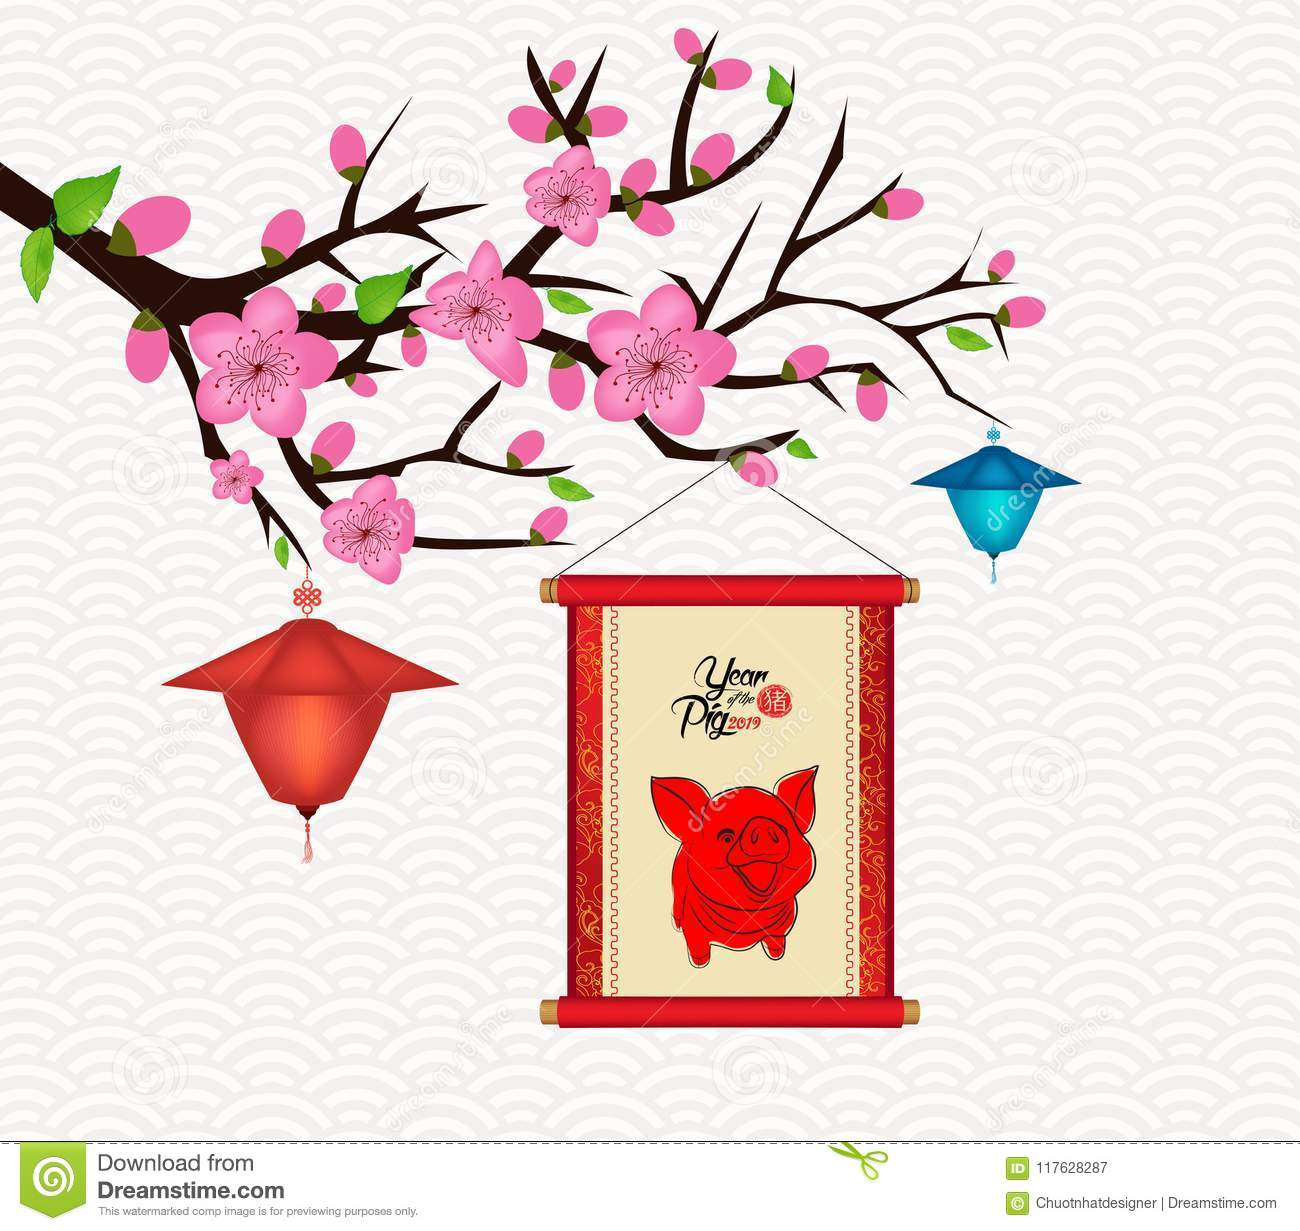 Happy New Year 2019 Blossom Greeting Card. Chinese New Year Of The.